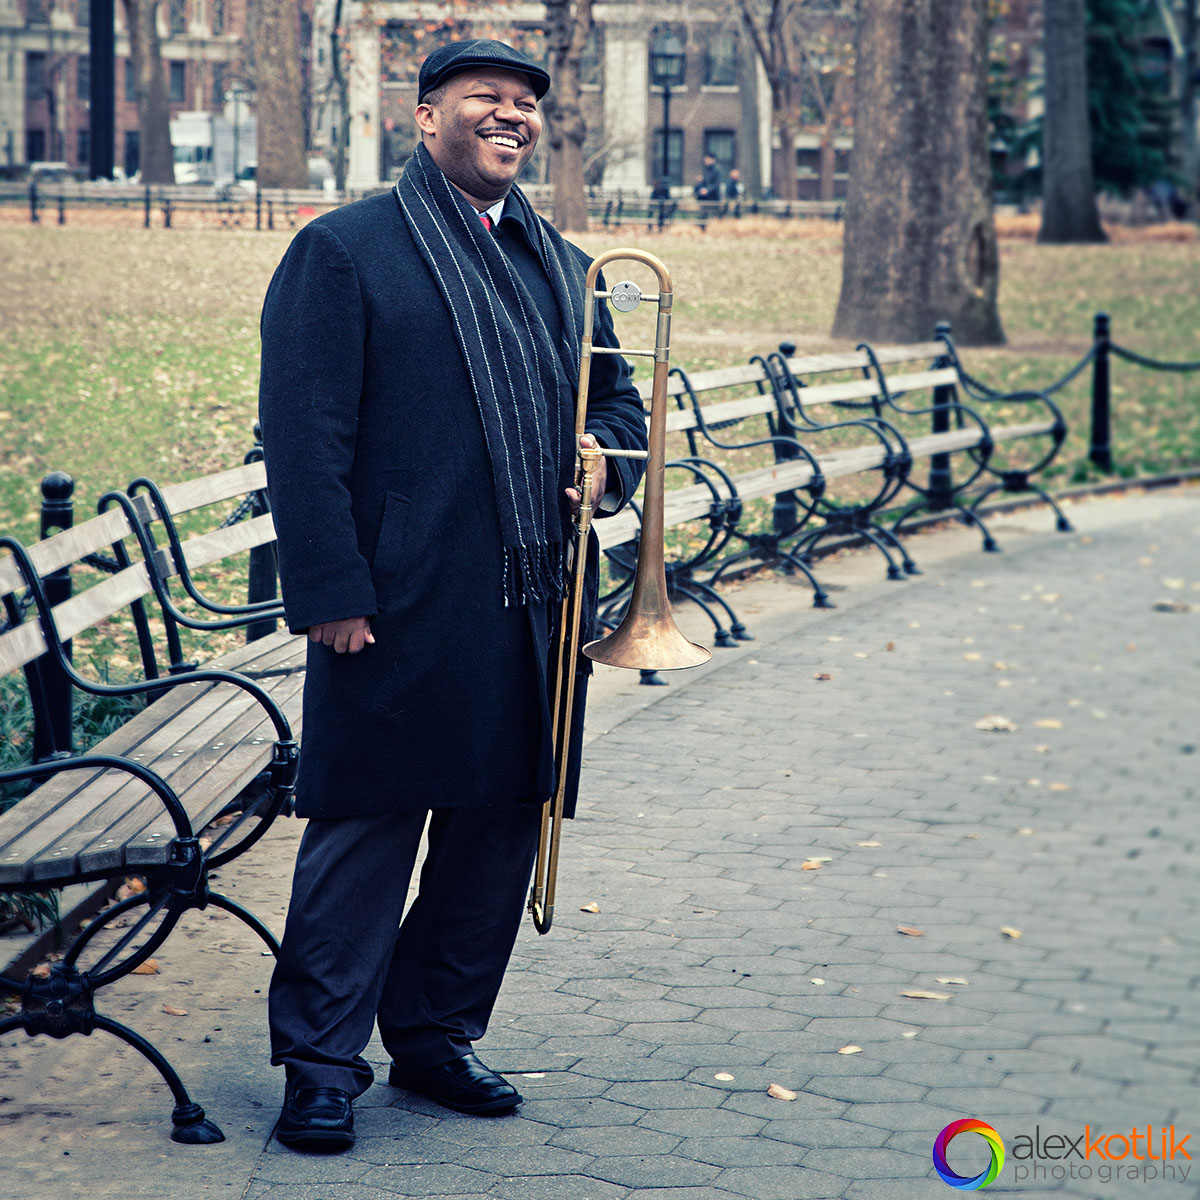 Musician Marcus Lewis on-location session in a park in New York city